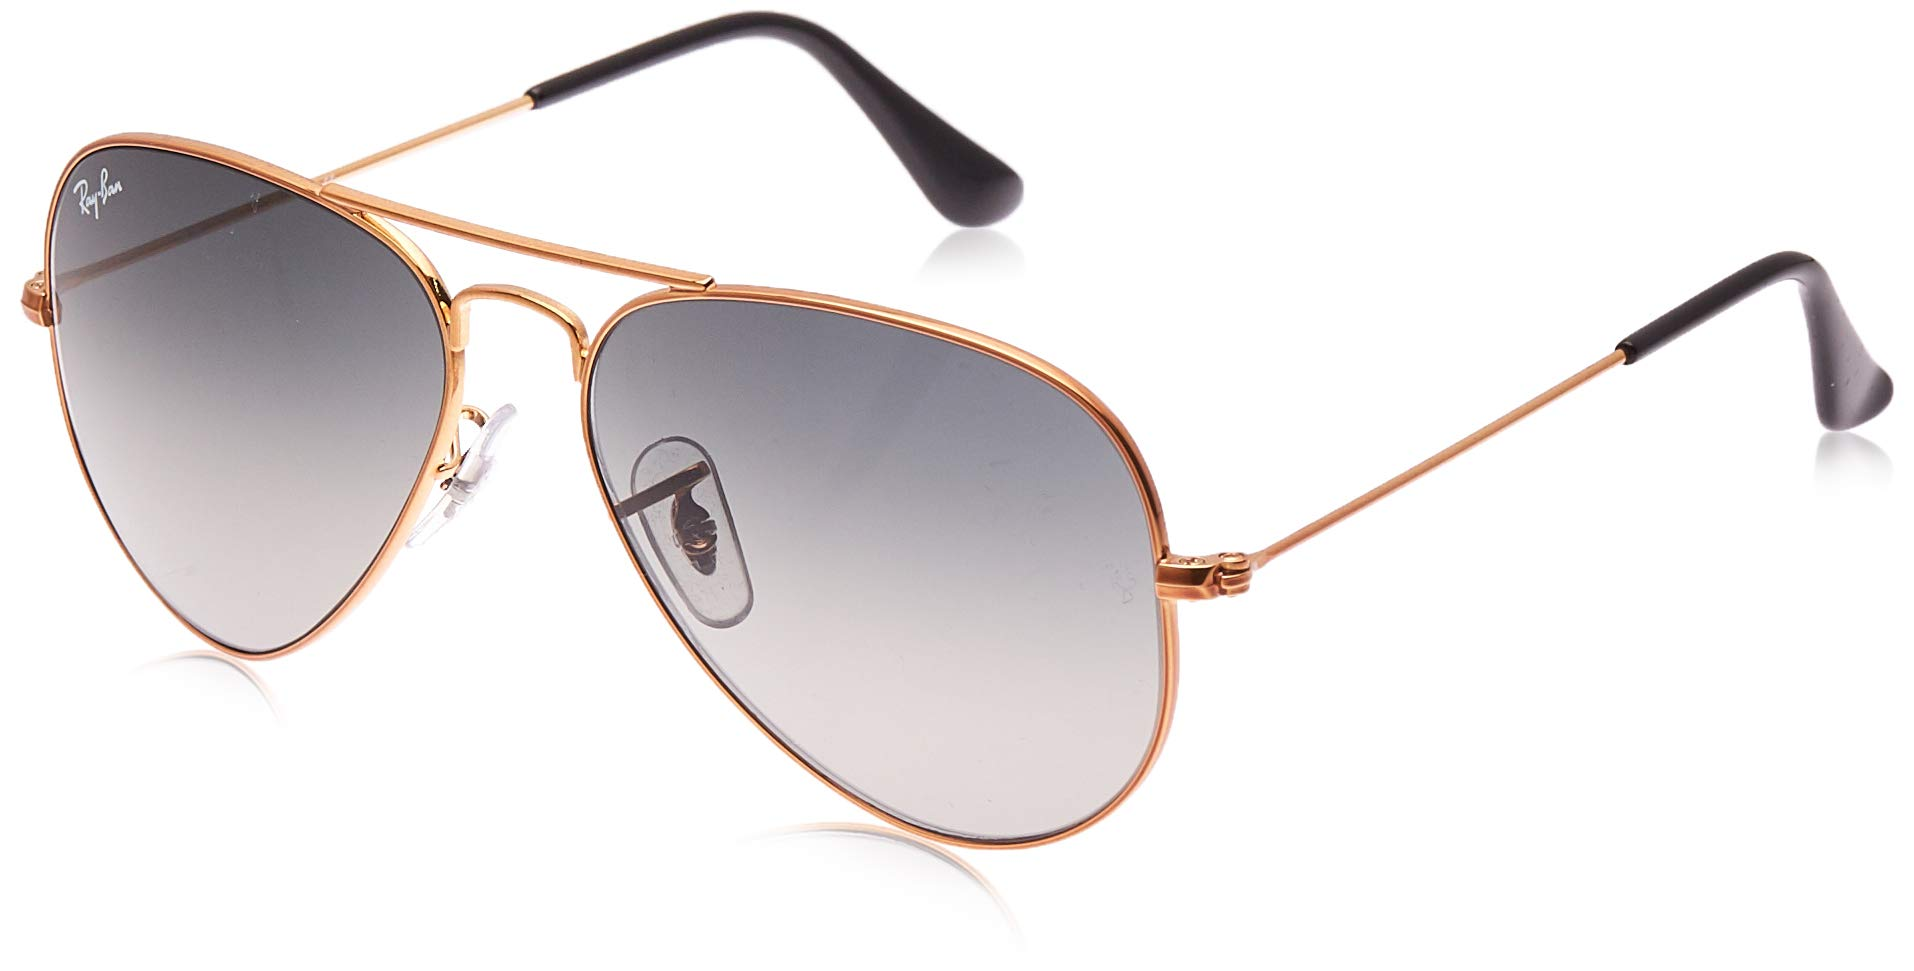 RAY-BAN RB3025 Aviator Large Metal Sunglasses, Shiny Bronze/Grey Gradient, 55 mm by RAY-BAN